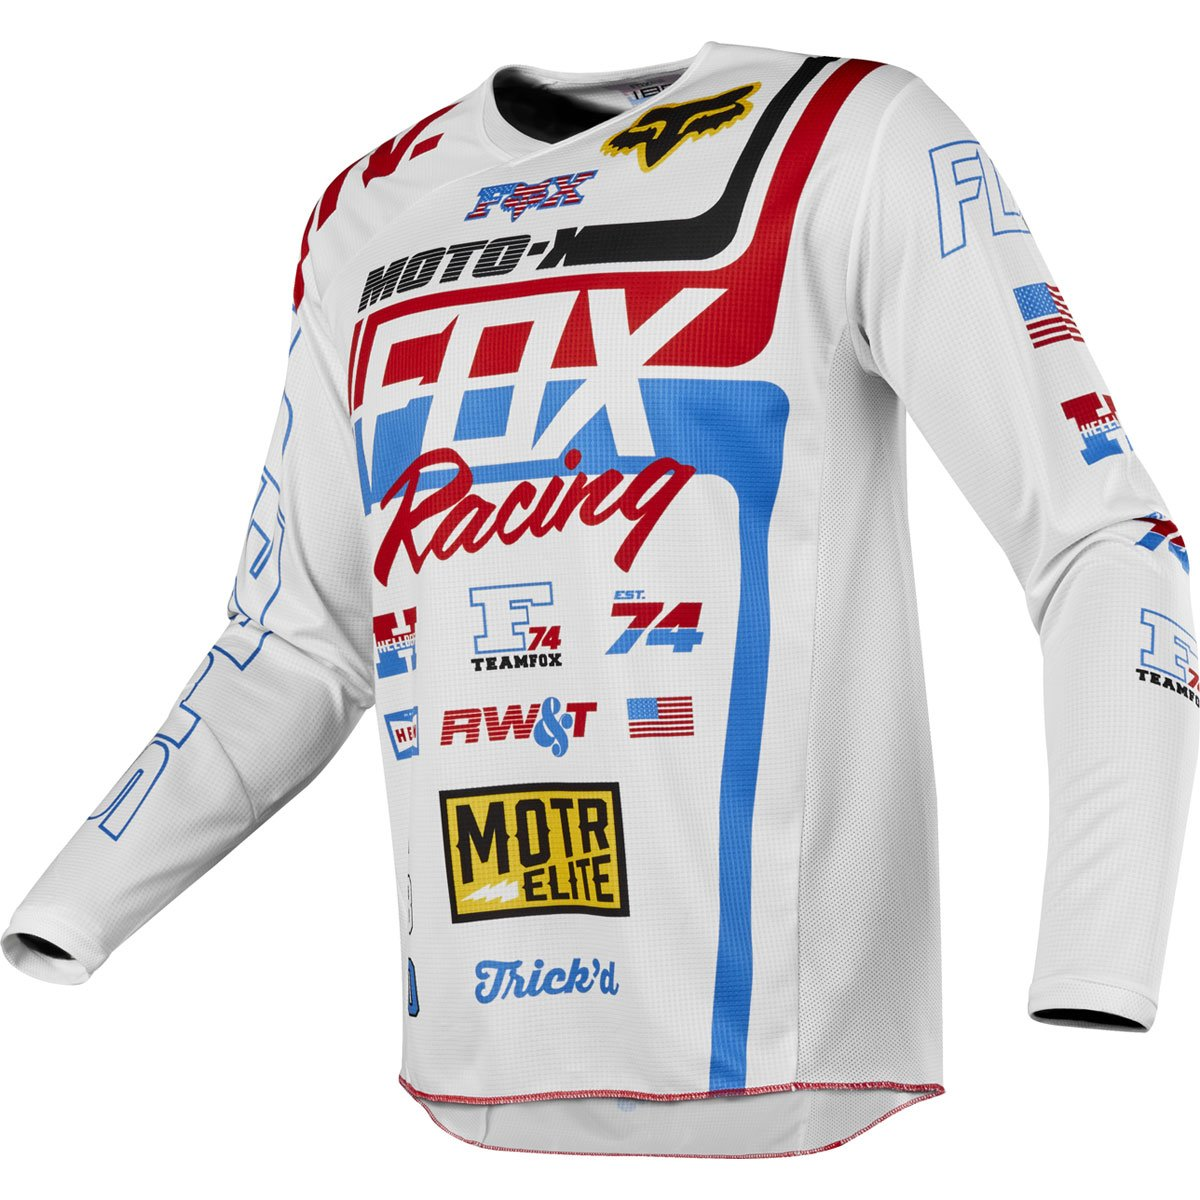 Fox Racing 2018 180 Jersey - Red White & True SE (XX-LARGE) (ONE COLOR)